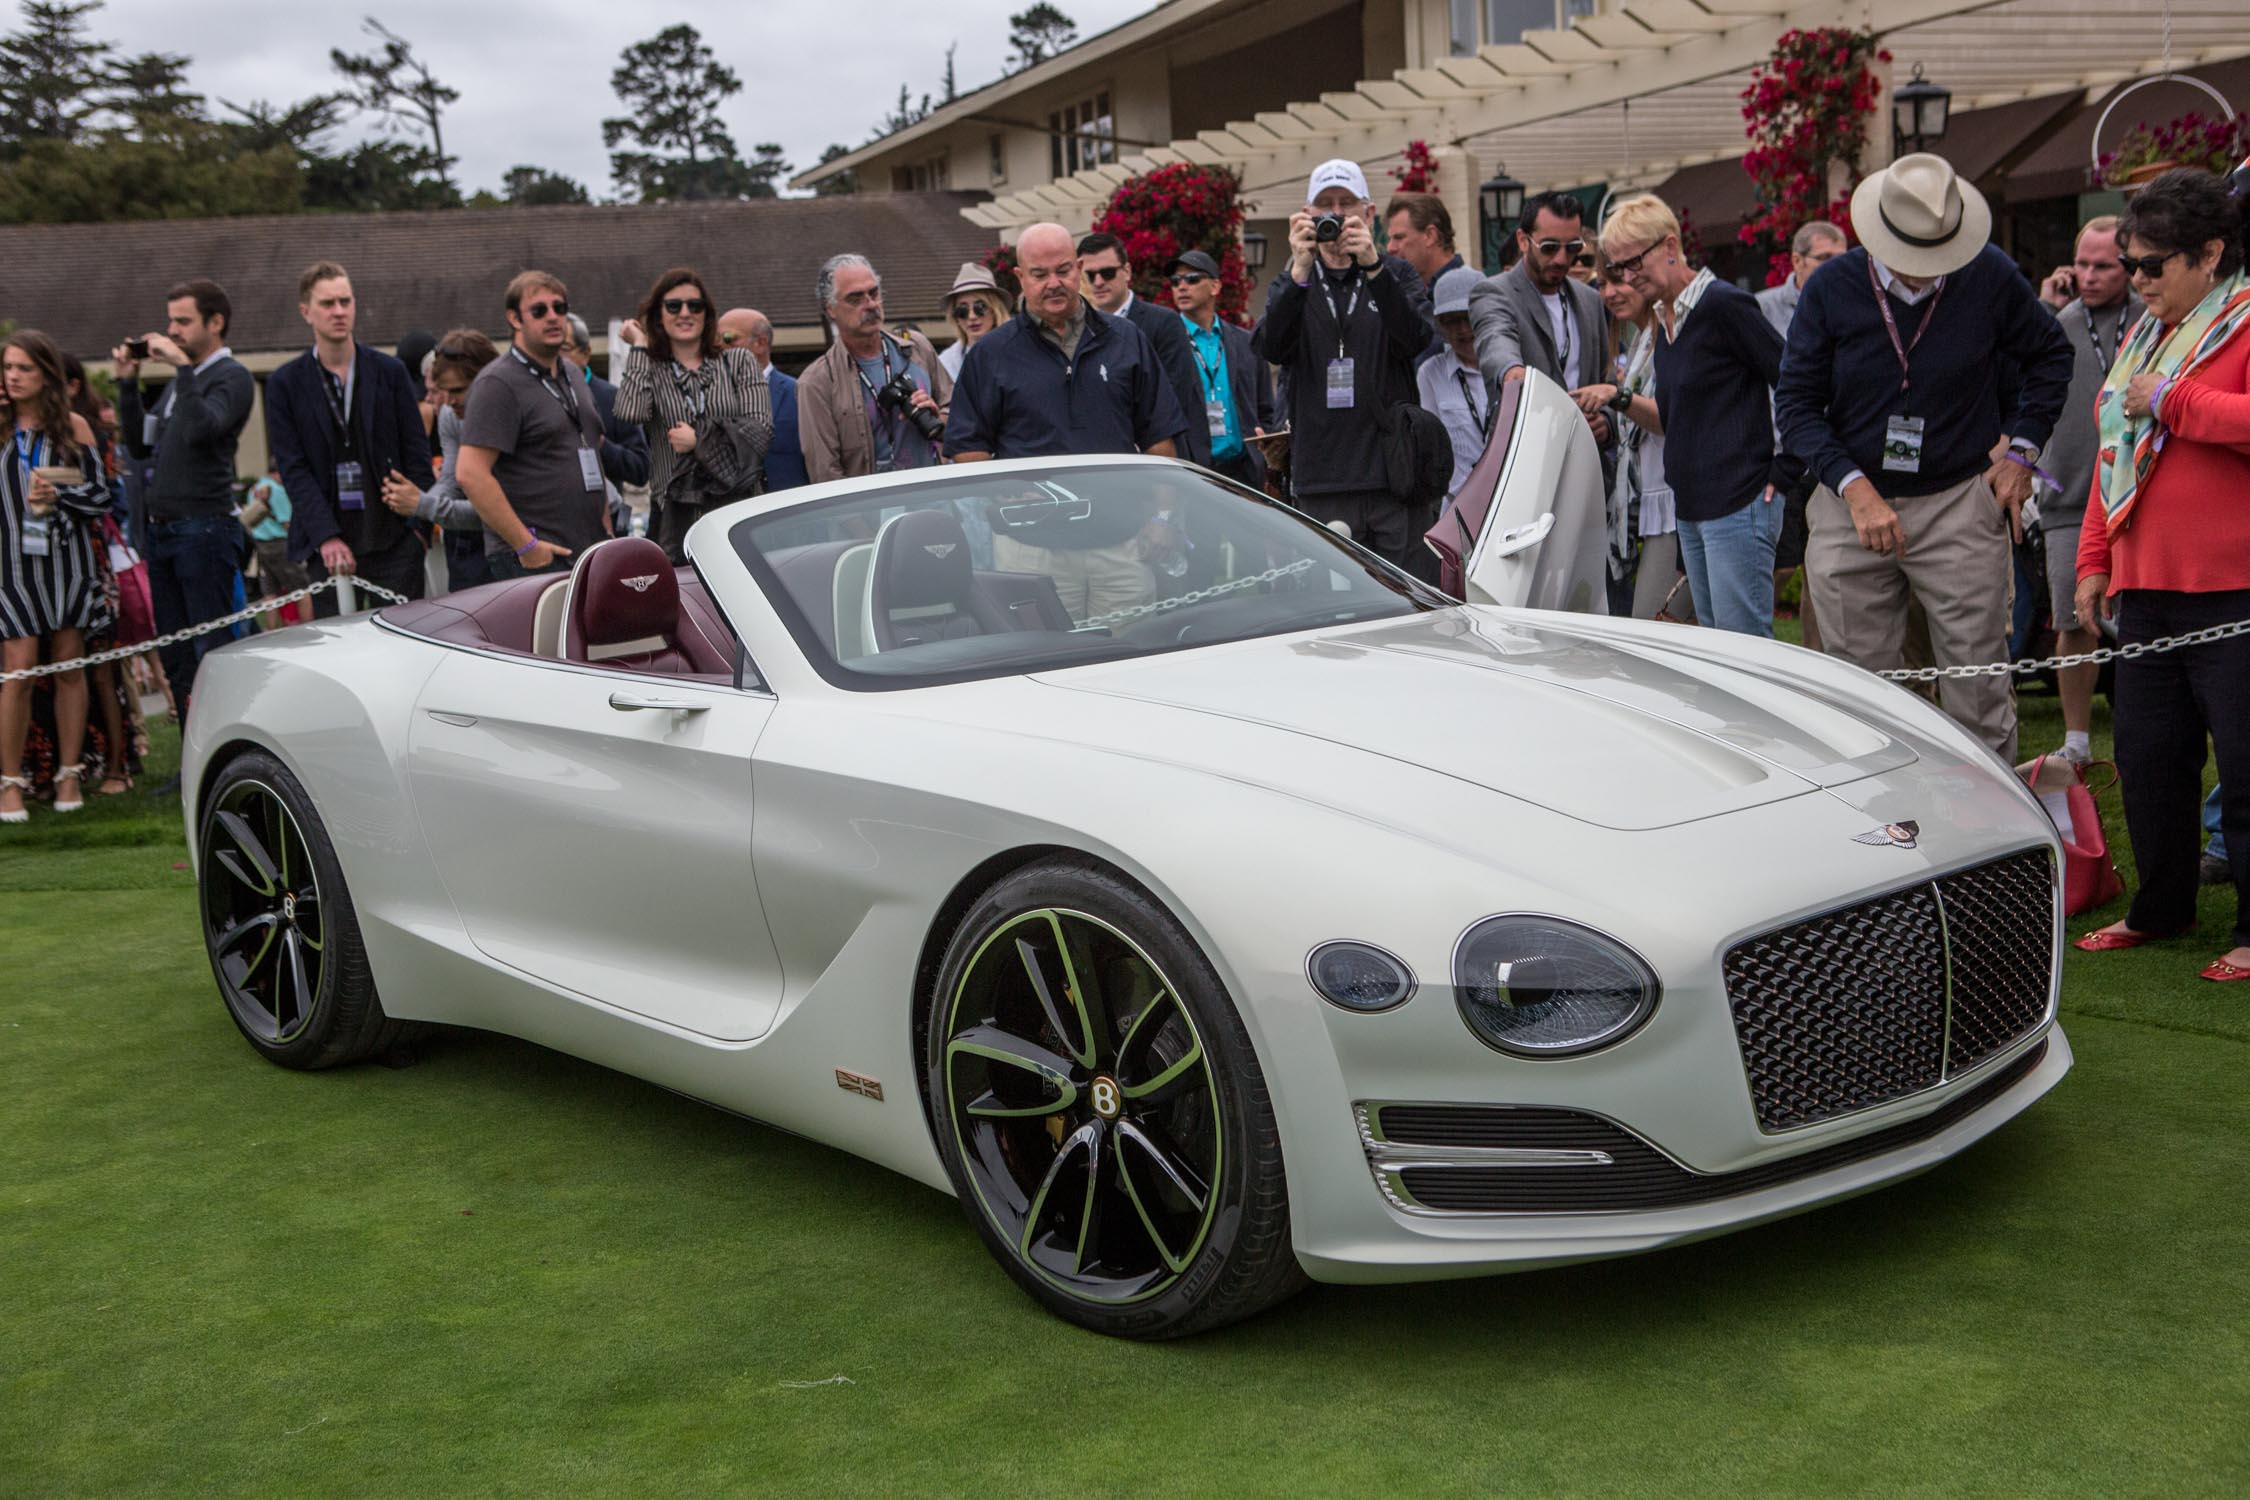 Pebble Beach Concours Concept Cars AutoNXT - Pebble beach car show 2018